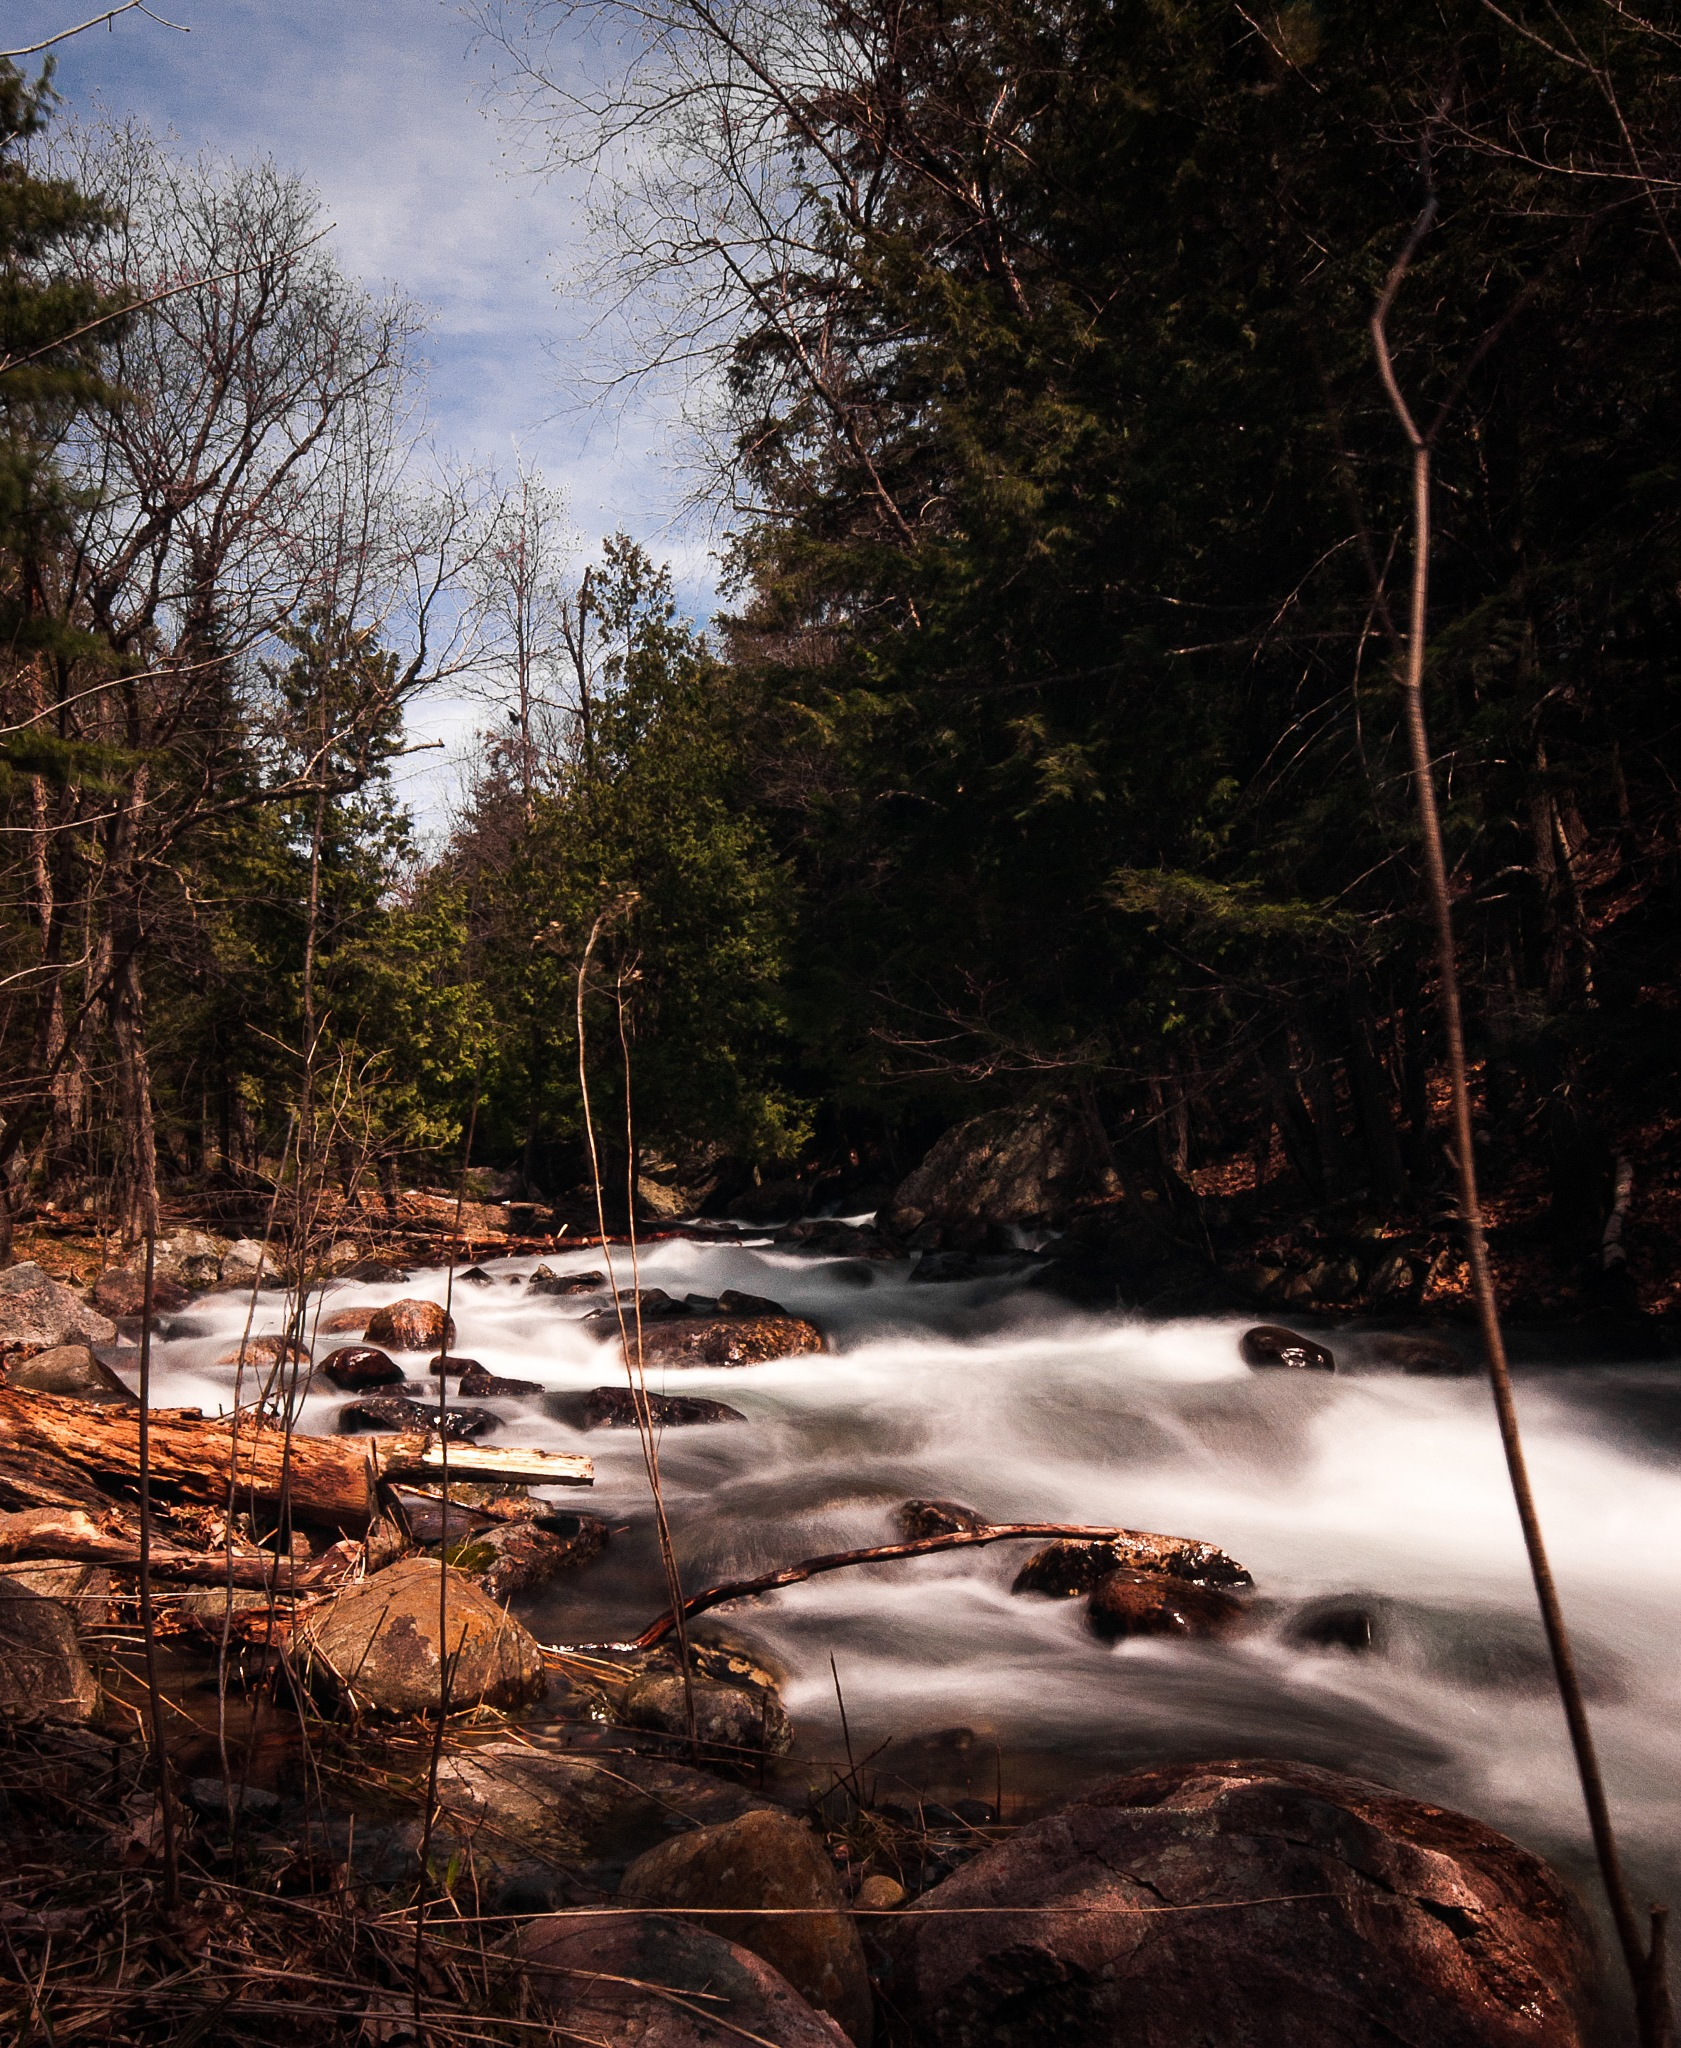 River Flow by JPBeauchesne